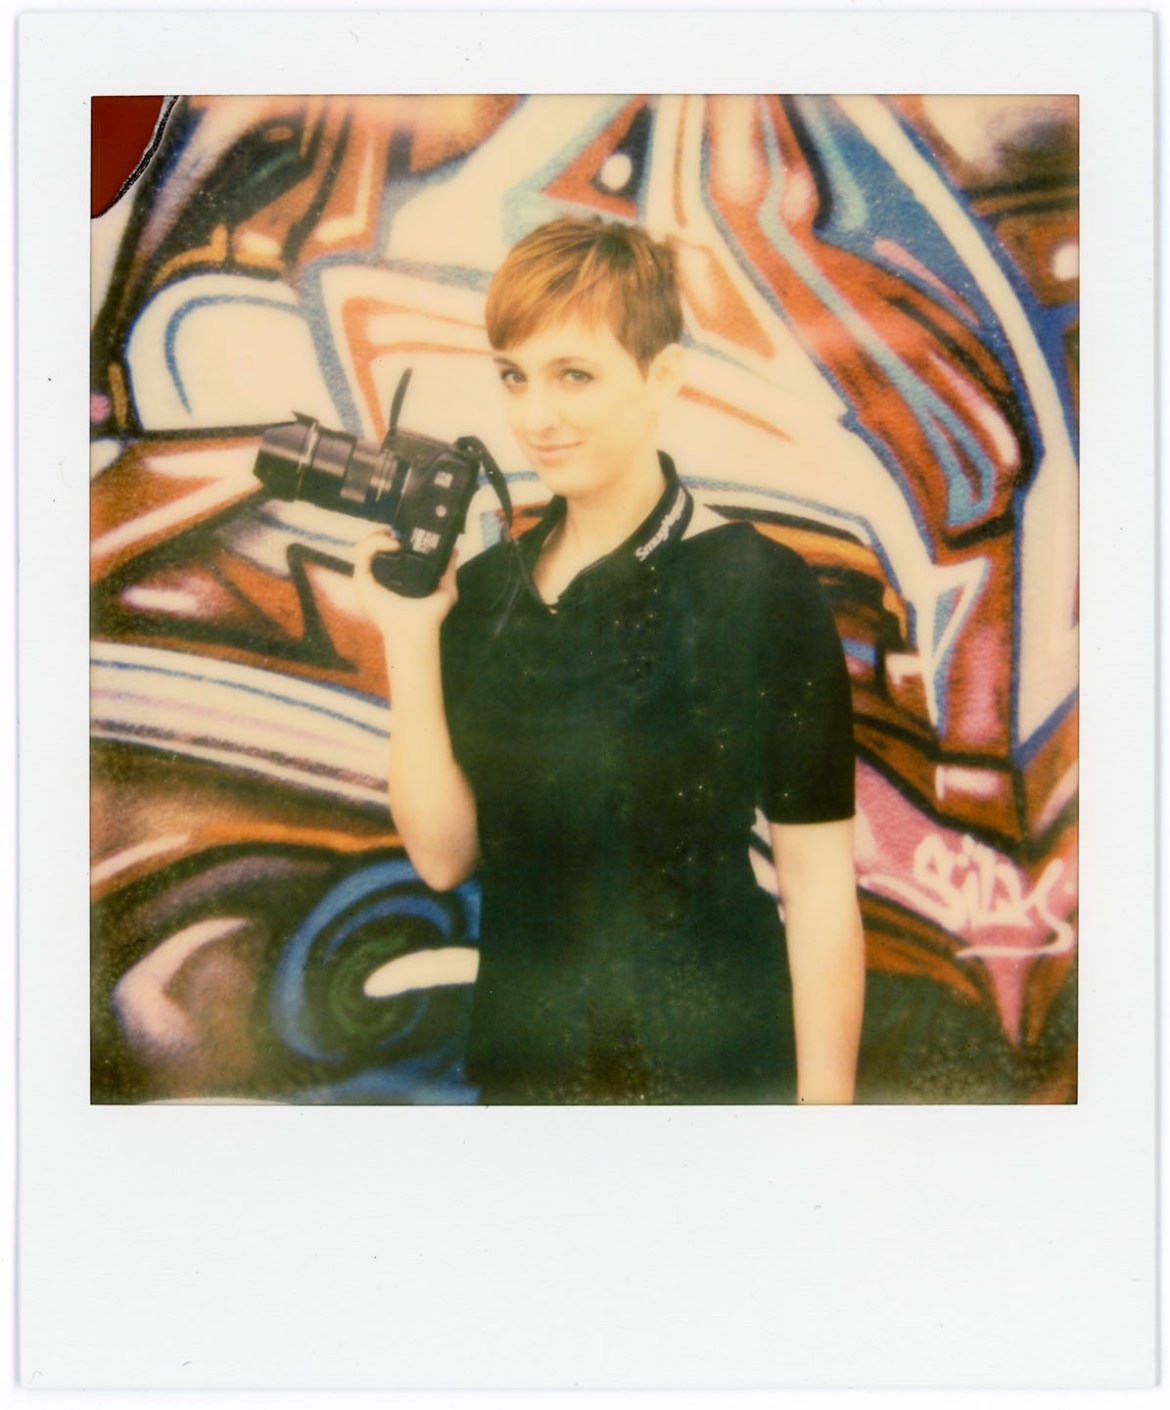 Pamela on Impossible Project Polaroid film